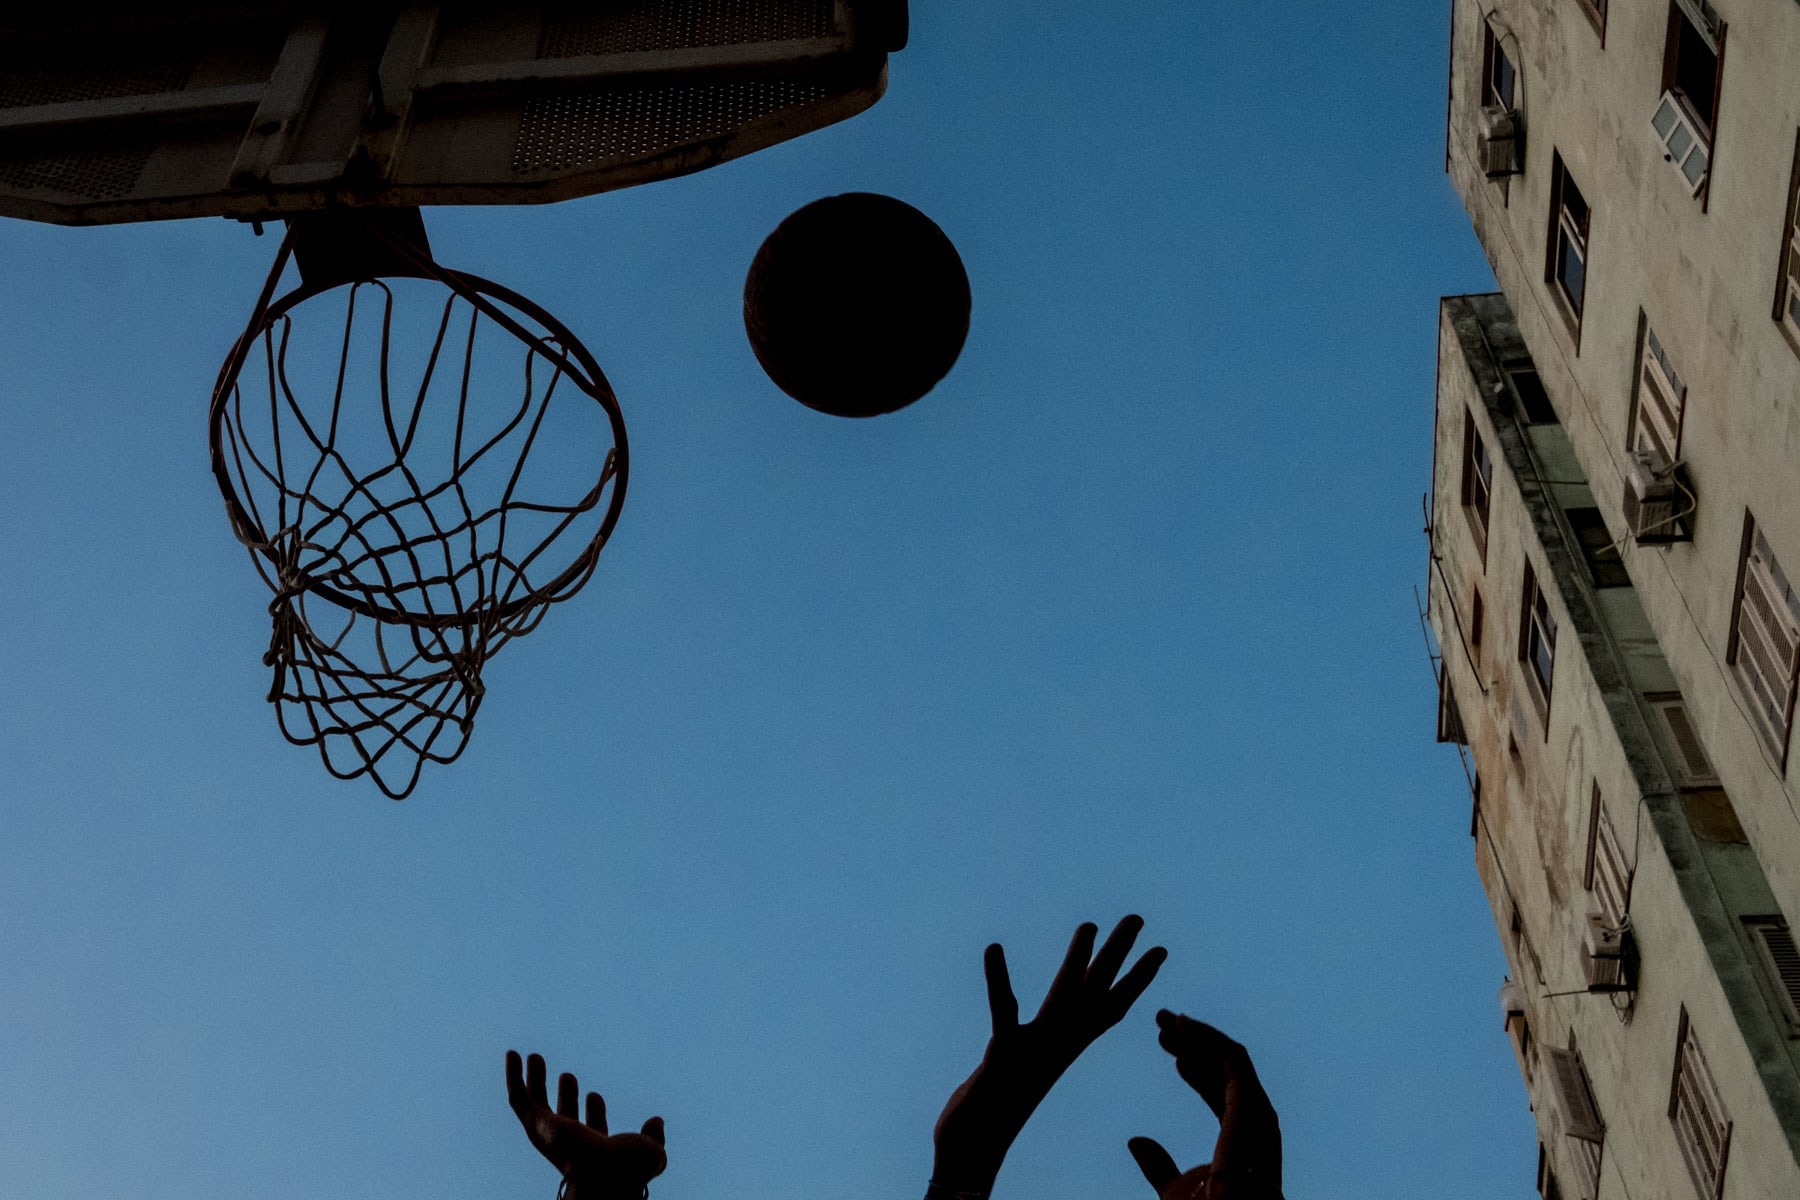 hands playing basket ball in havana, against a blue sky